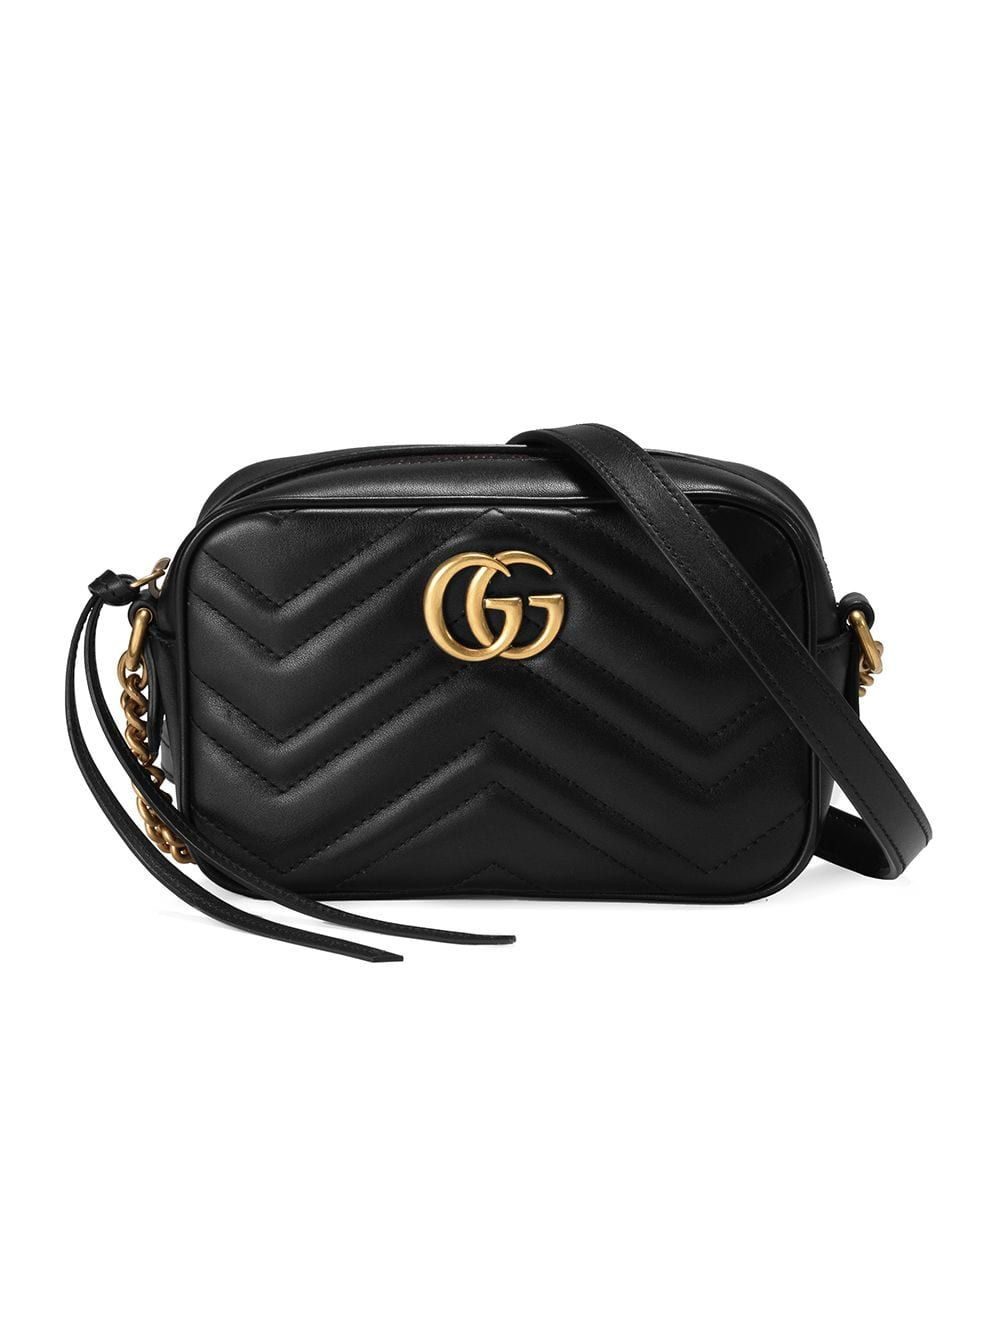 Gucci Black GG Marmont Mini Leather Bag – Farfetch